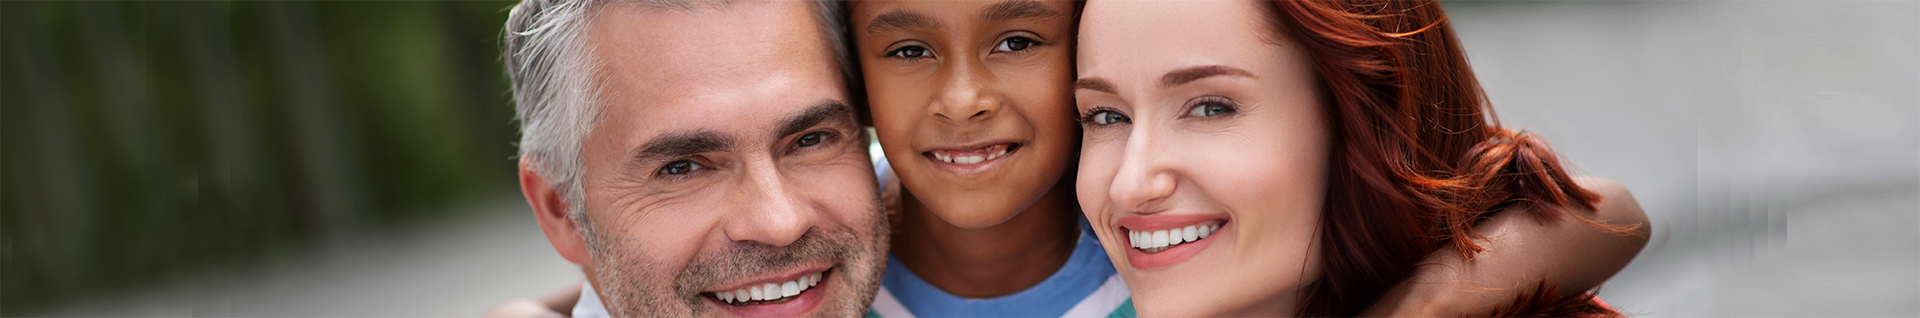 Kimberly V. Wright Adoption Law Attorney helps create families and positive, nurturing lives for older children and mature, loving parents.